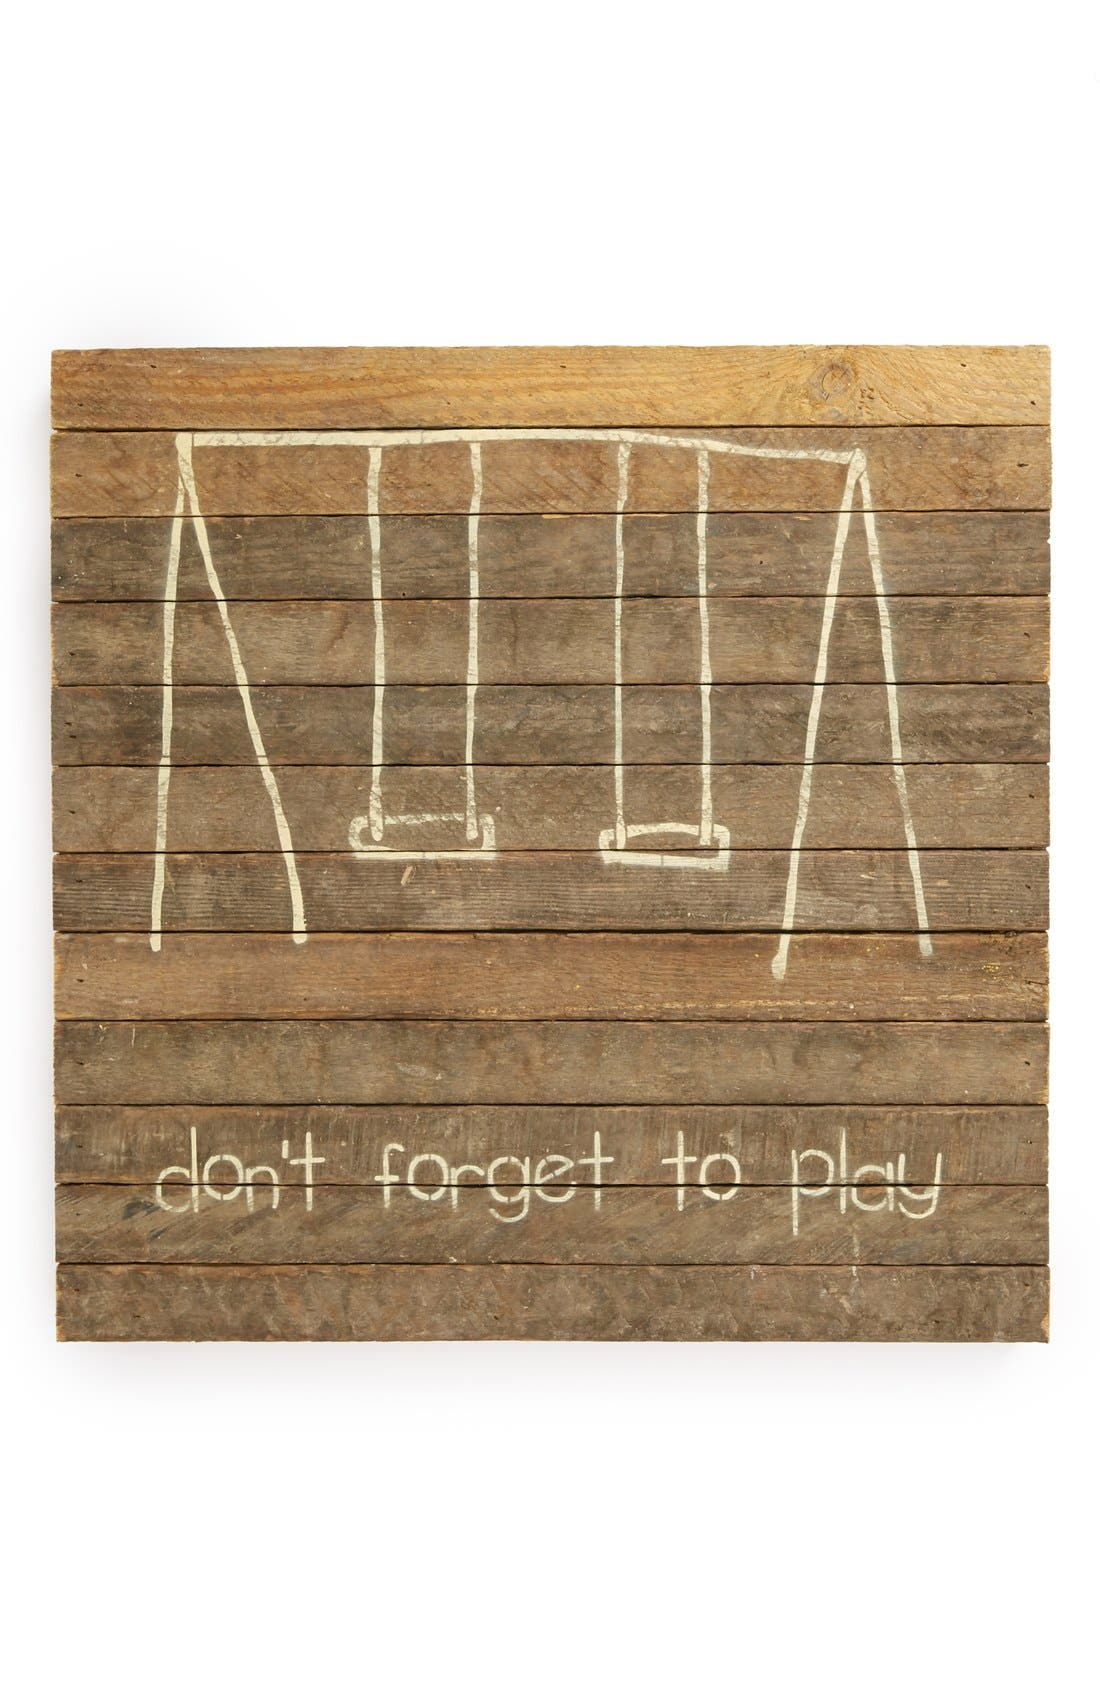 Alternate Image 1 Selected - Second Nature by Hand 'Don't Forget to Play' Wall Art